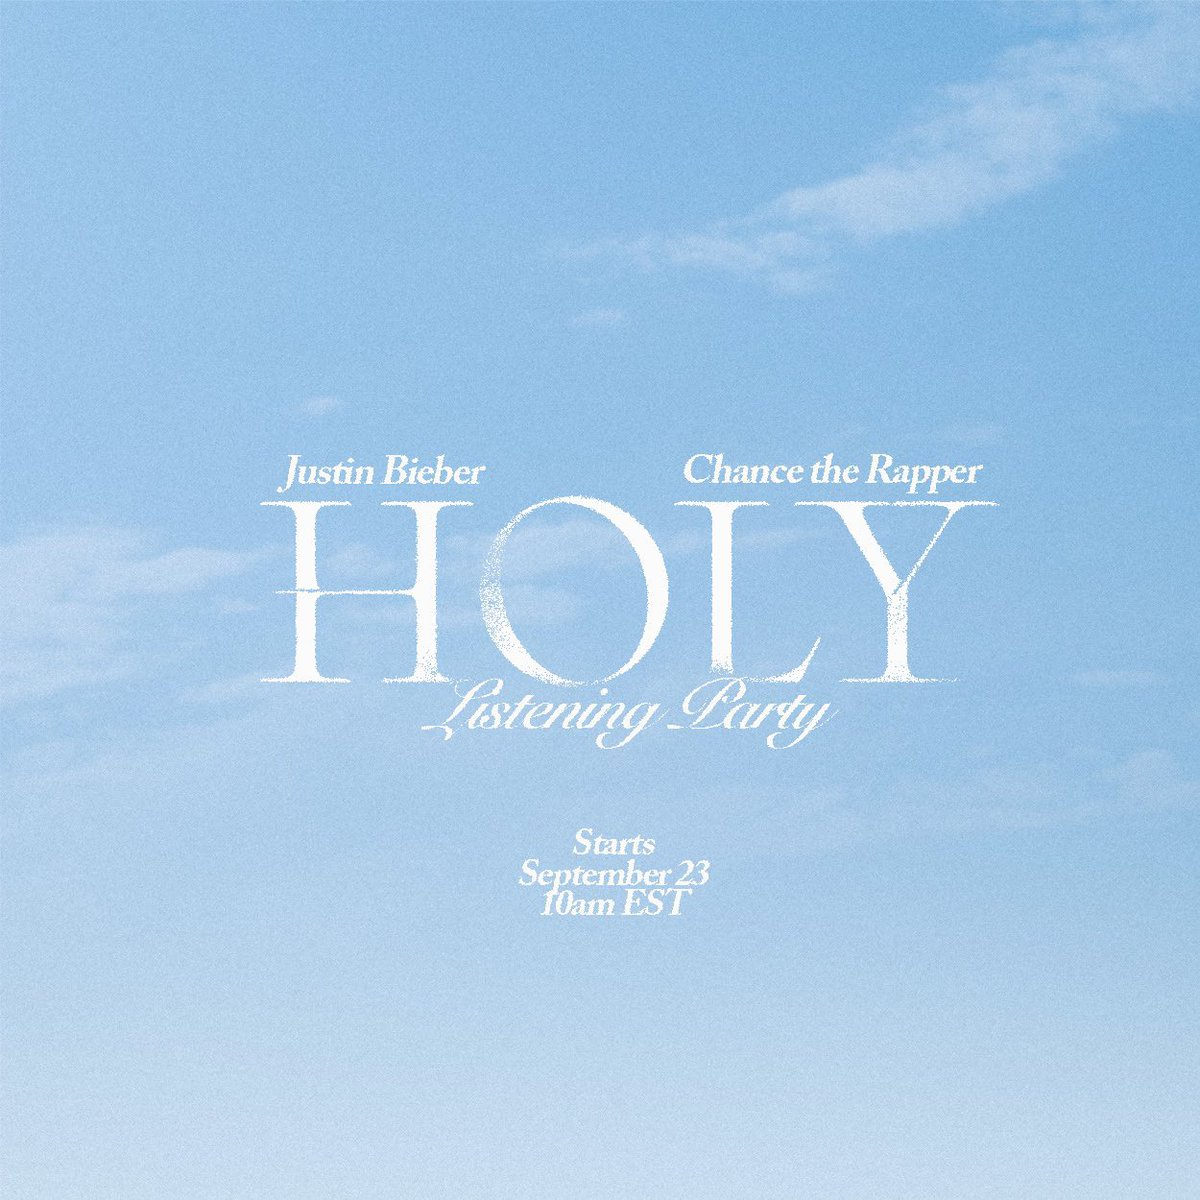 #Holy listening party all day today. See u in there https://t.co/R98F2Eio5c https://t.co/c8Vlw7utUF